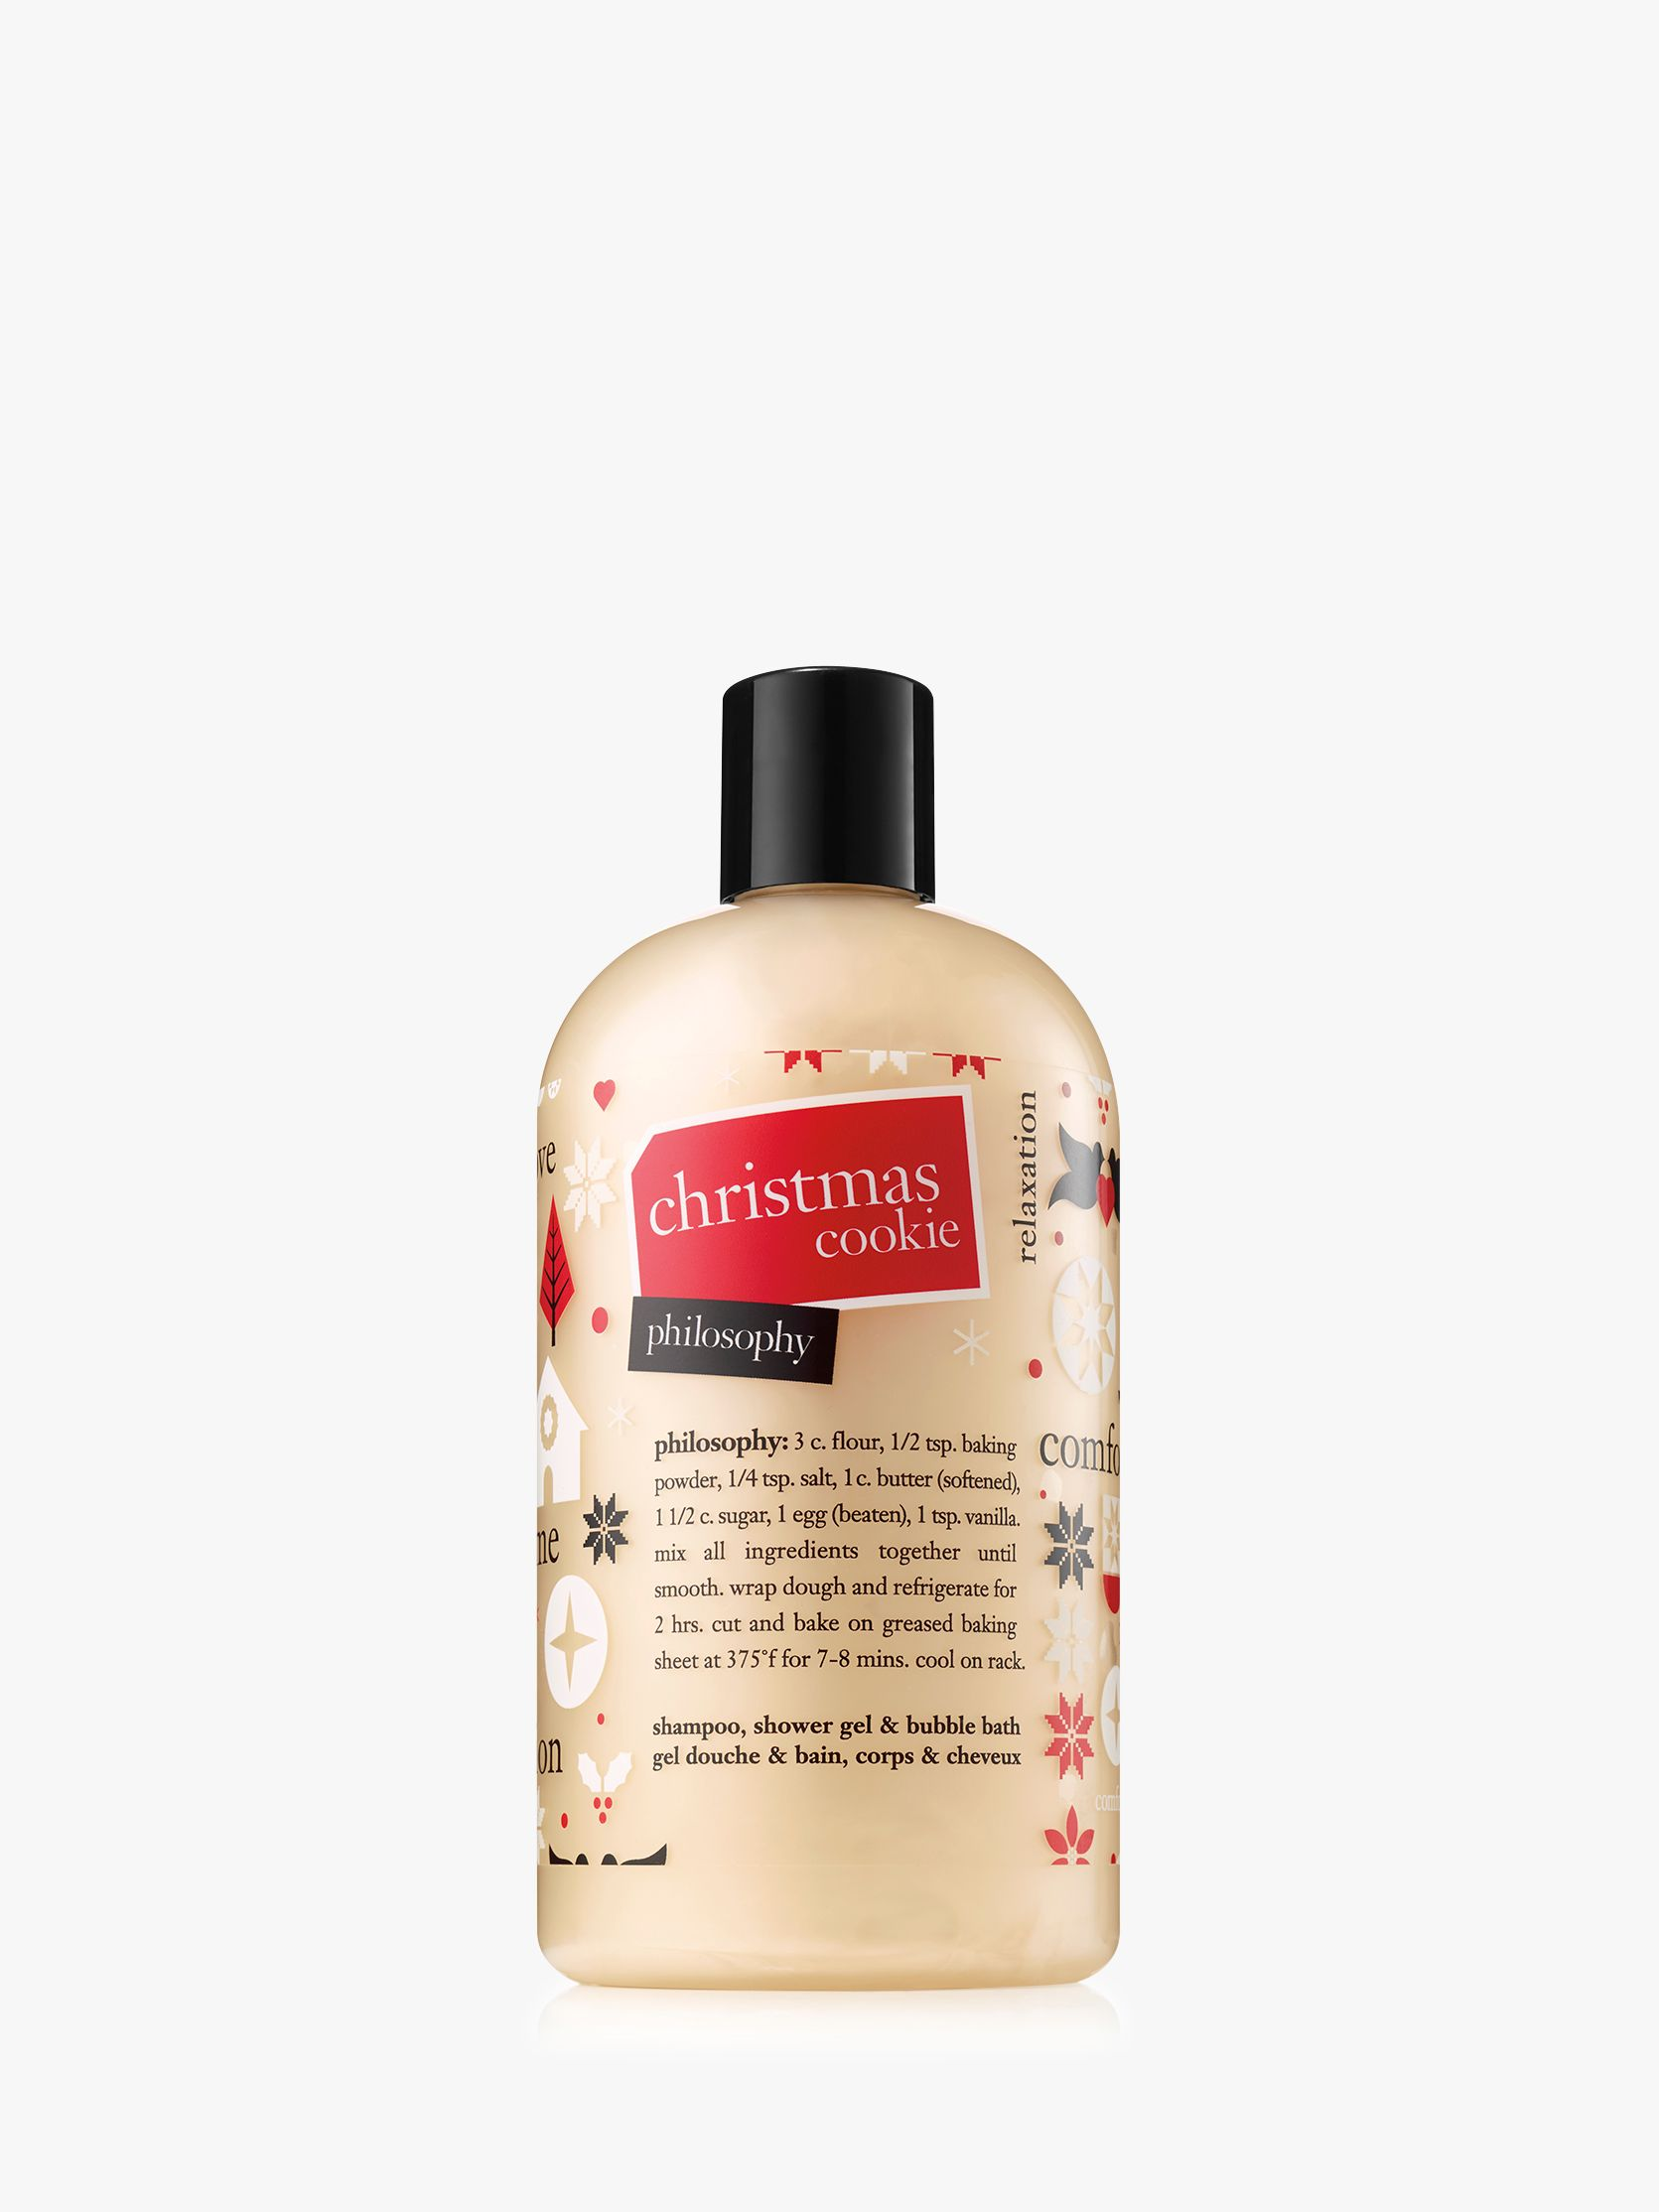 Philosophy Christmas Cookie Shampoo Shower Gel Bubble Bath 480ml At John Lewis Partners